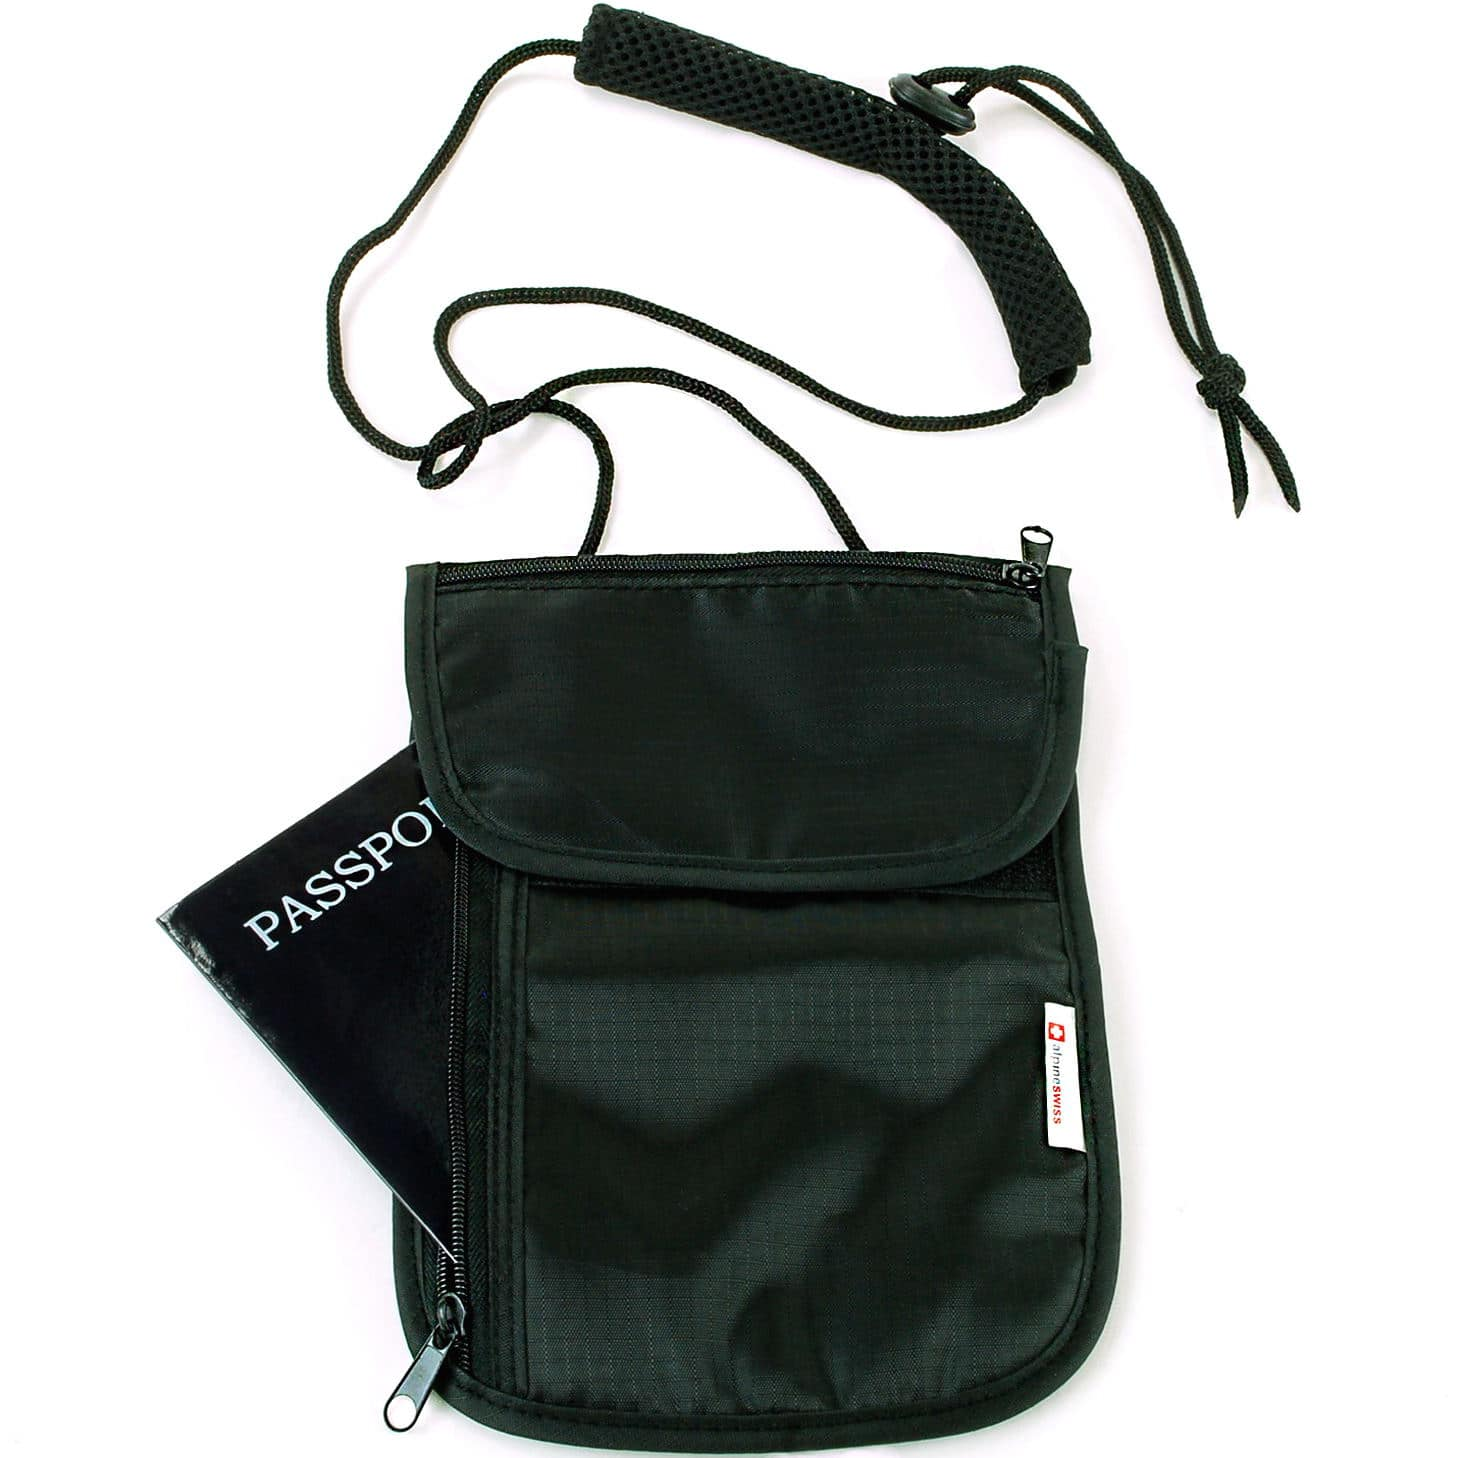 daa09f17d8 Alpine Swiss Travel Wallets Neck Pouch Under Clothing Security Stash $4.99